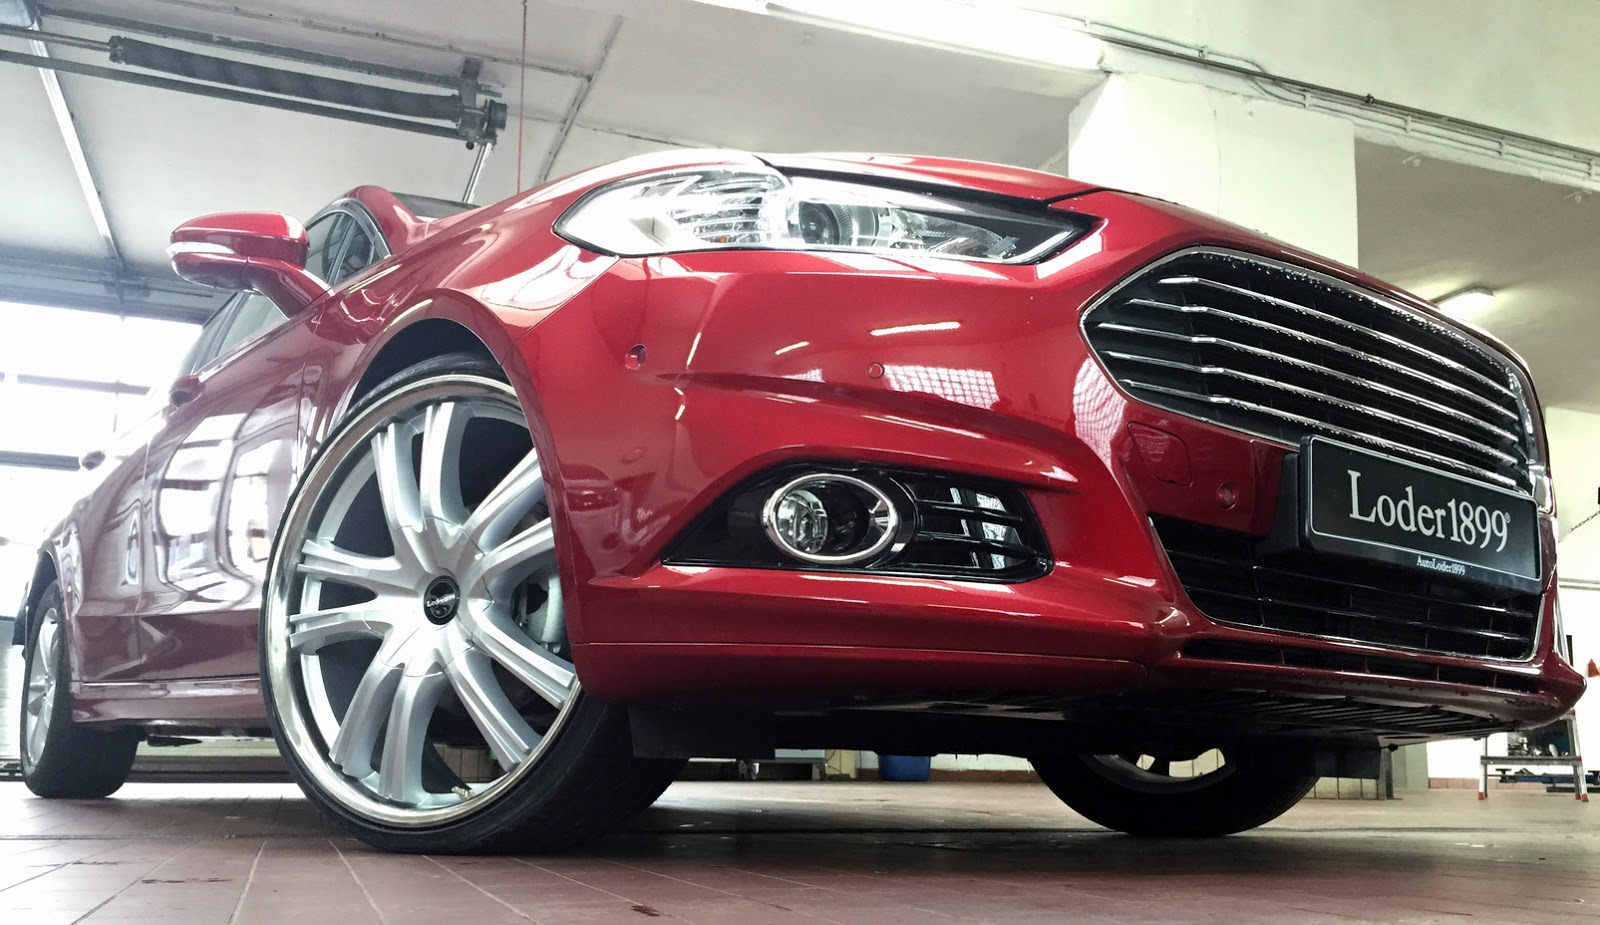 Ford Fusion Wheels >> Too Much? Loder1899 Gives New Ford Mondeo 22-Inch Wheels | Carscoops